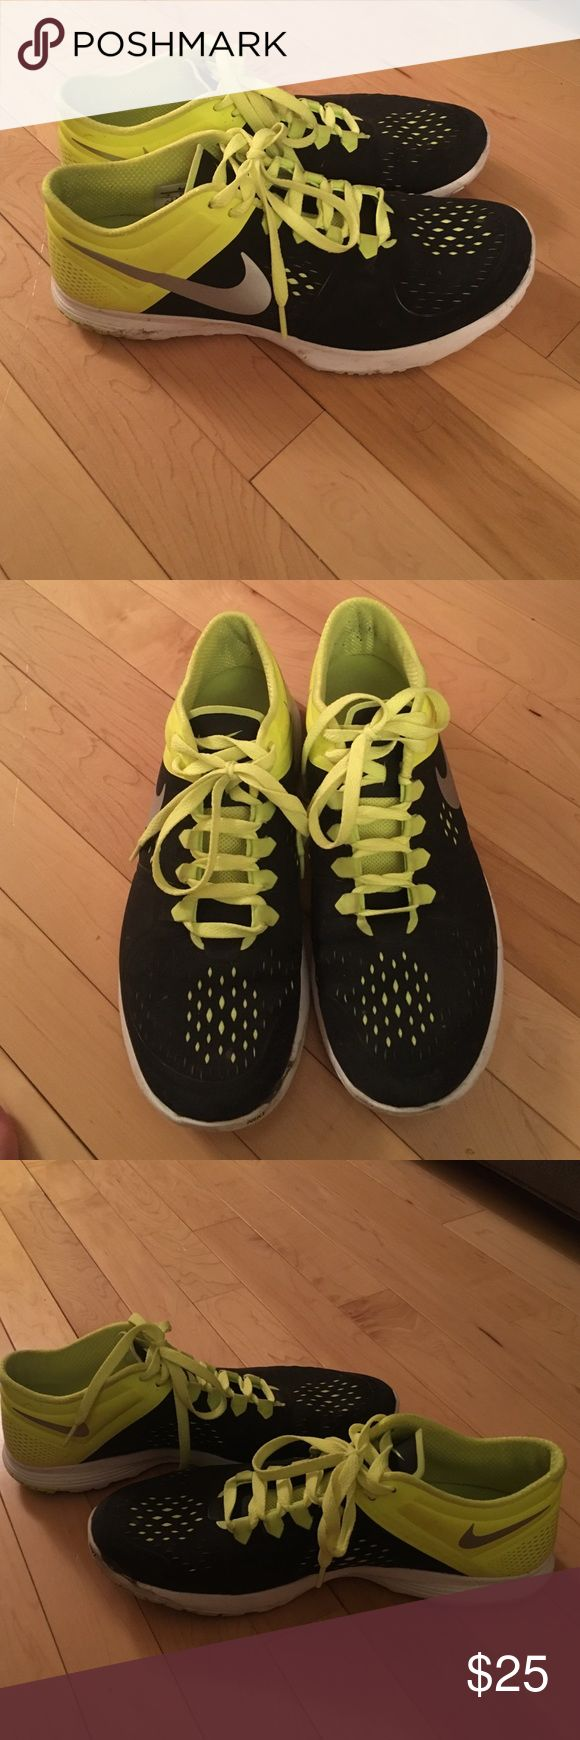 Black and Neon Nike shoes Black and neon Nike athletic shoes! Barely worn, too big. Nike Shoes Athletic Shoes